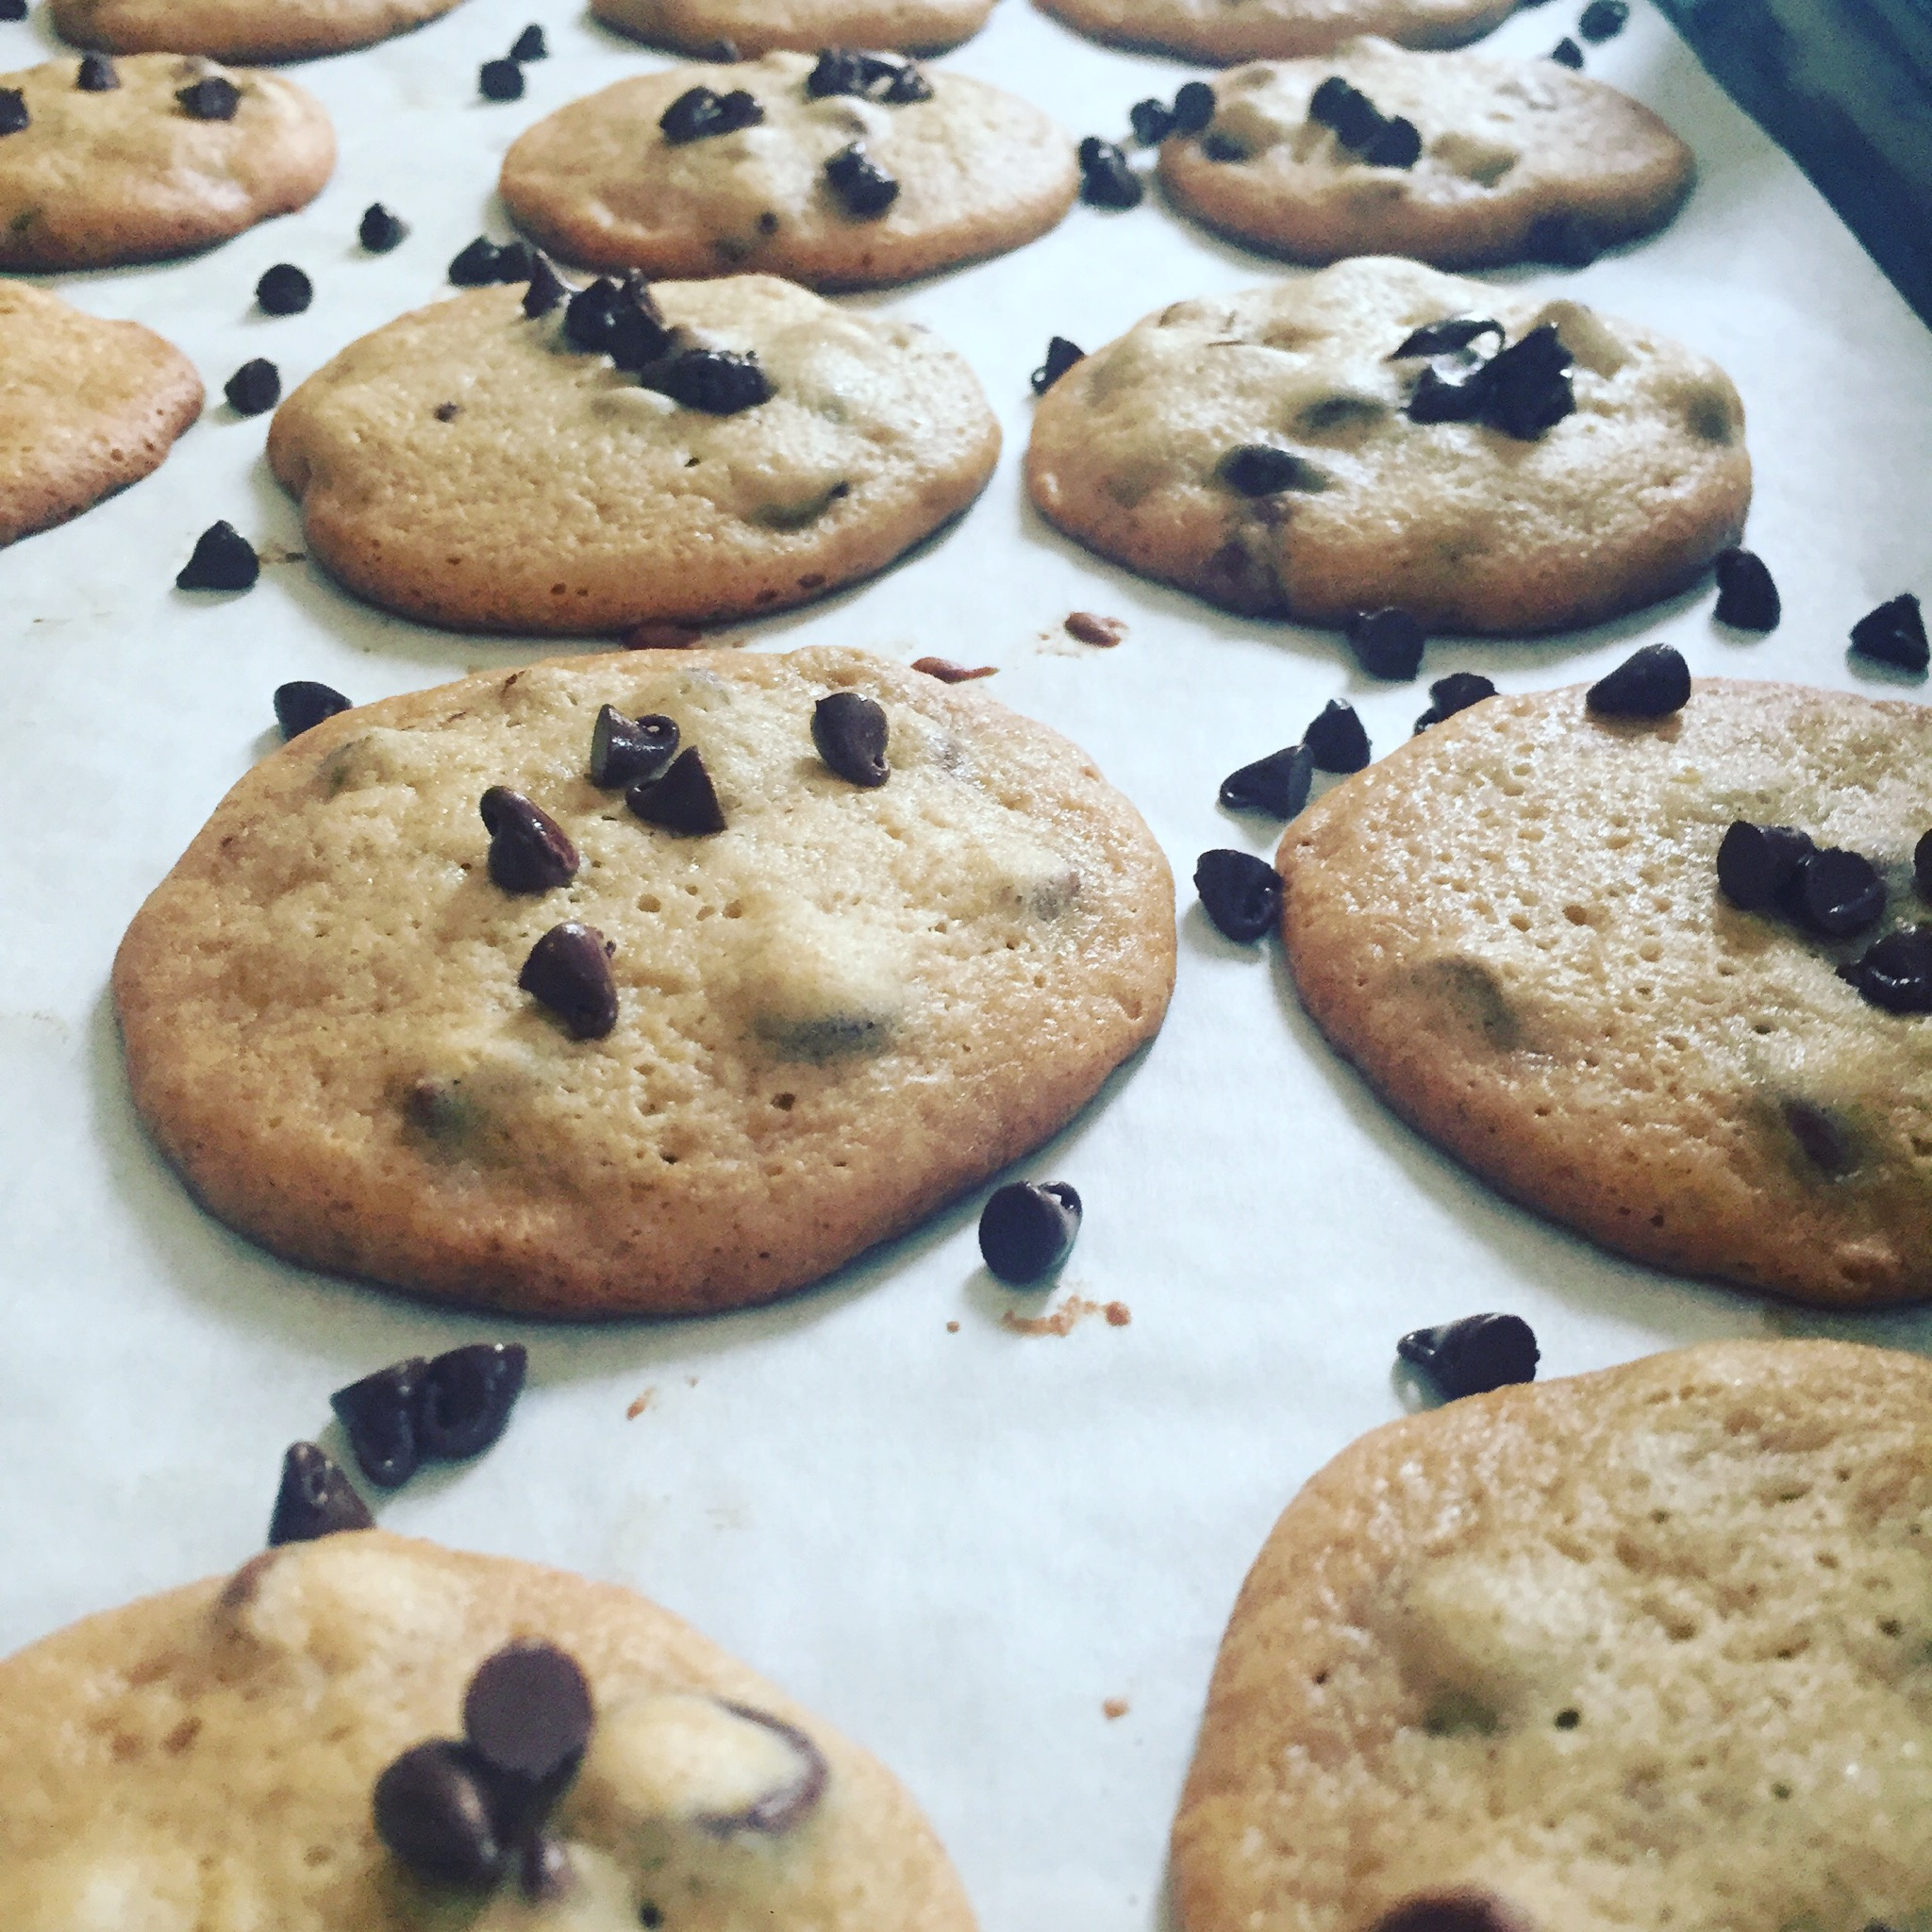 Fresh Baked Chocolate Chip Cookies